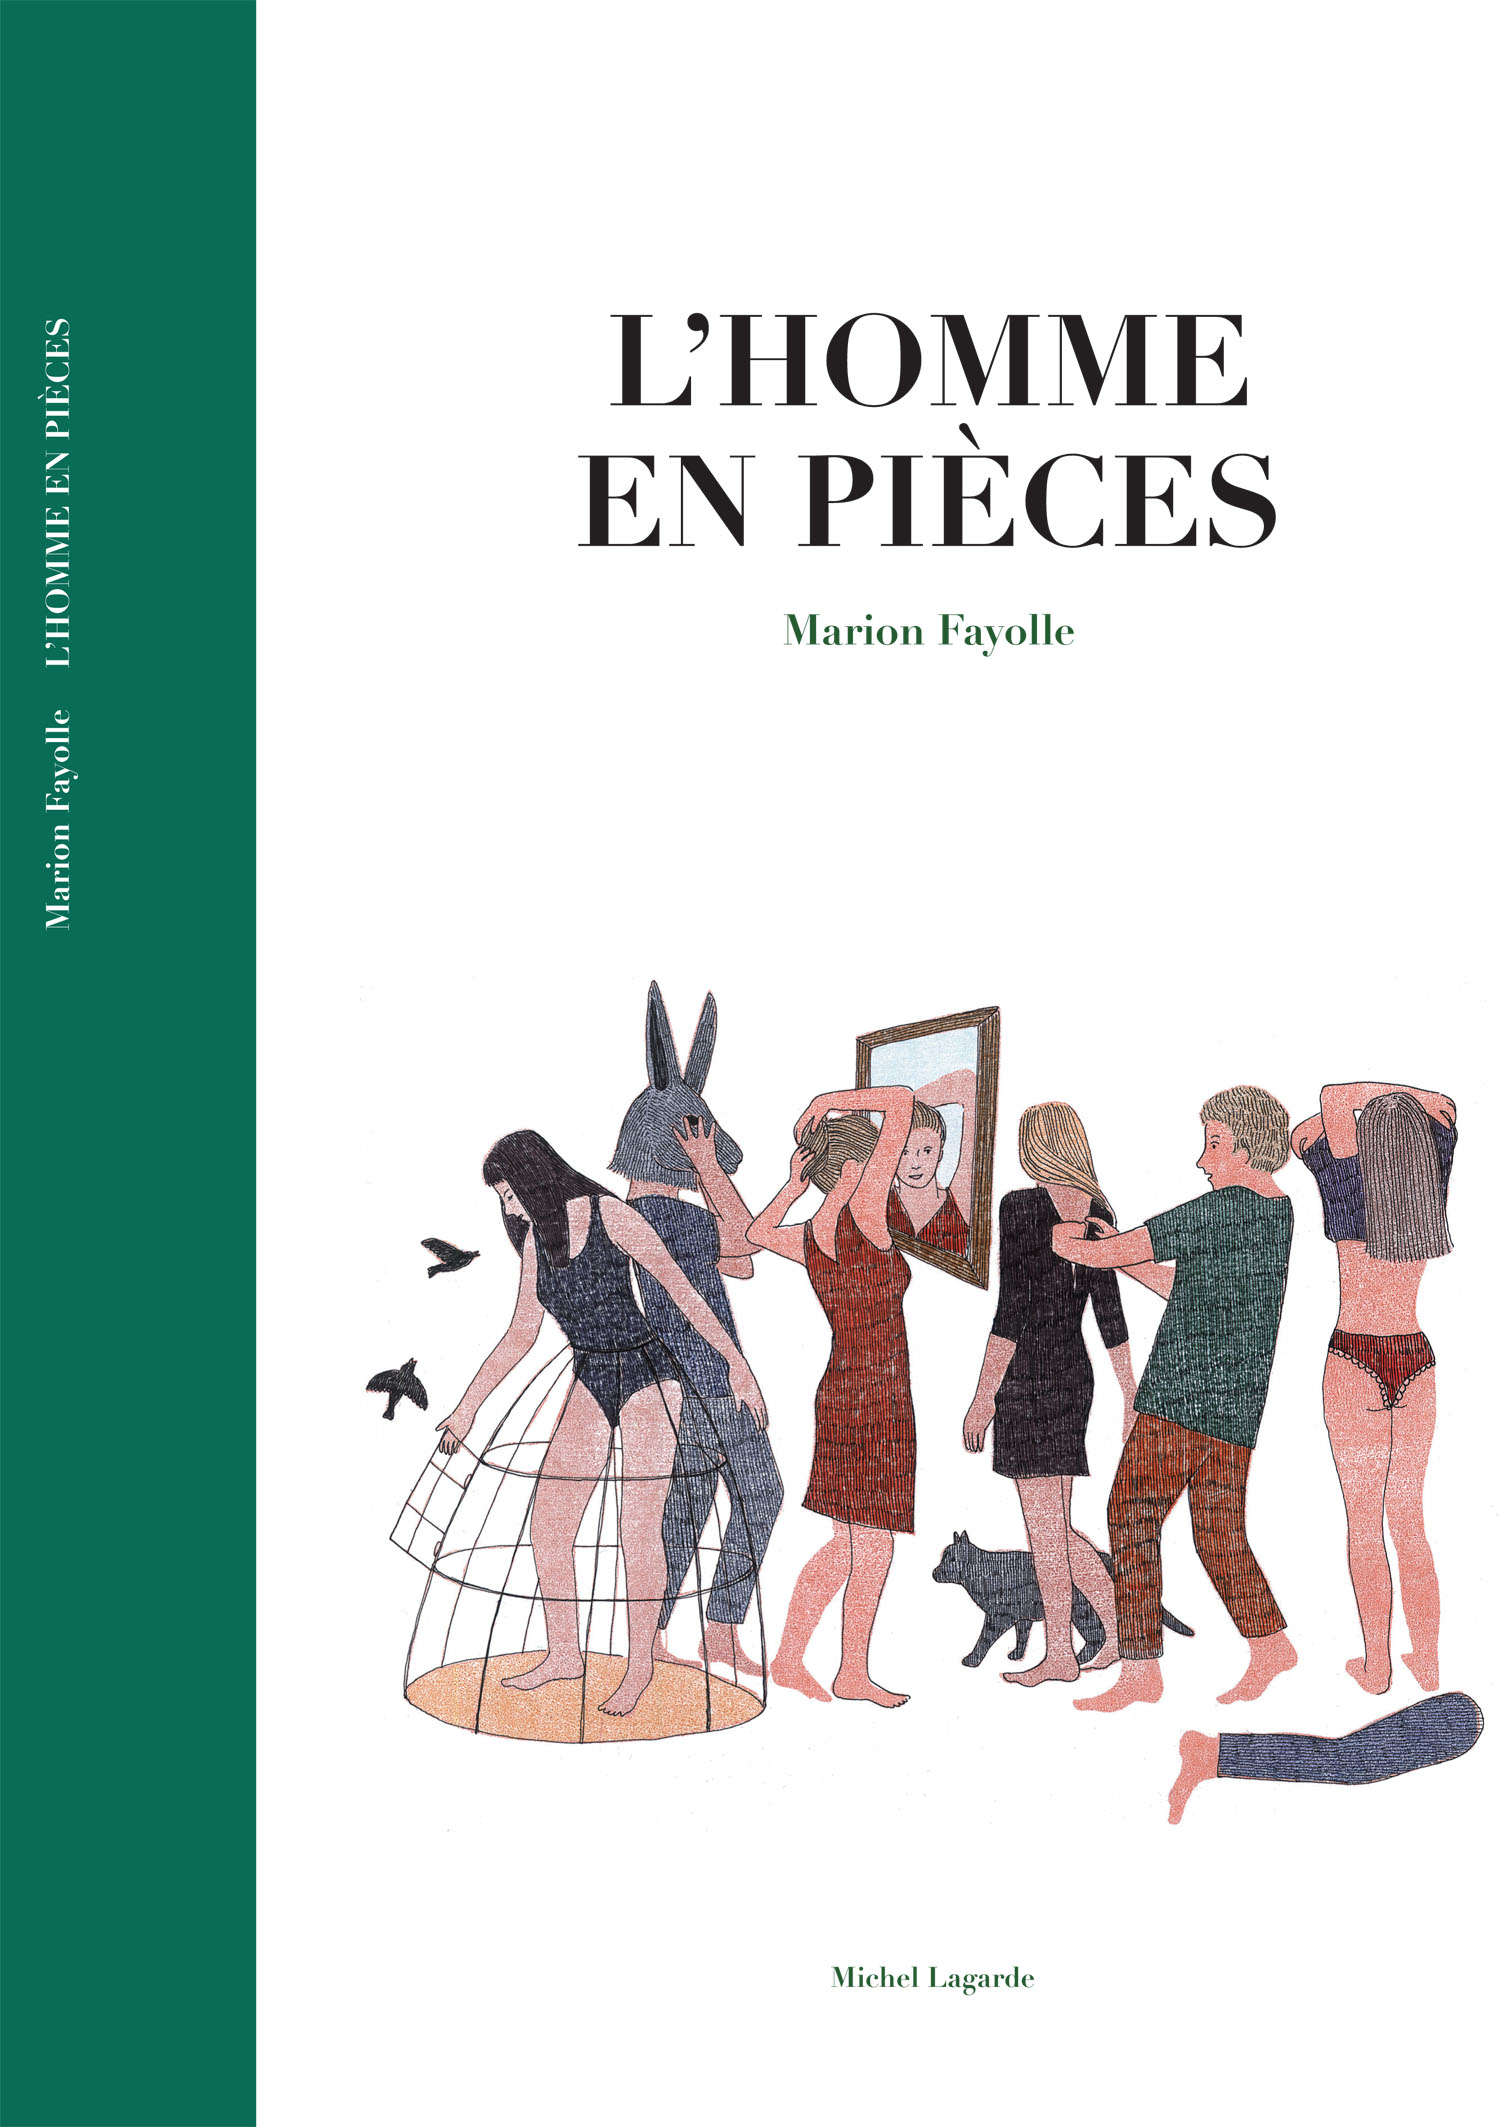 Couverture l&#039;Homme en Pi&egrave;ces | Bande dessin&eacute;e | L&#039;homme en pi&egrave;ces